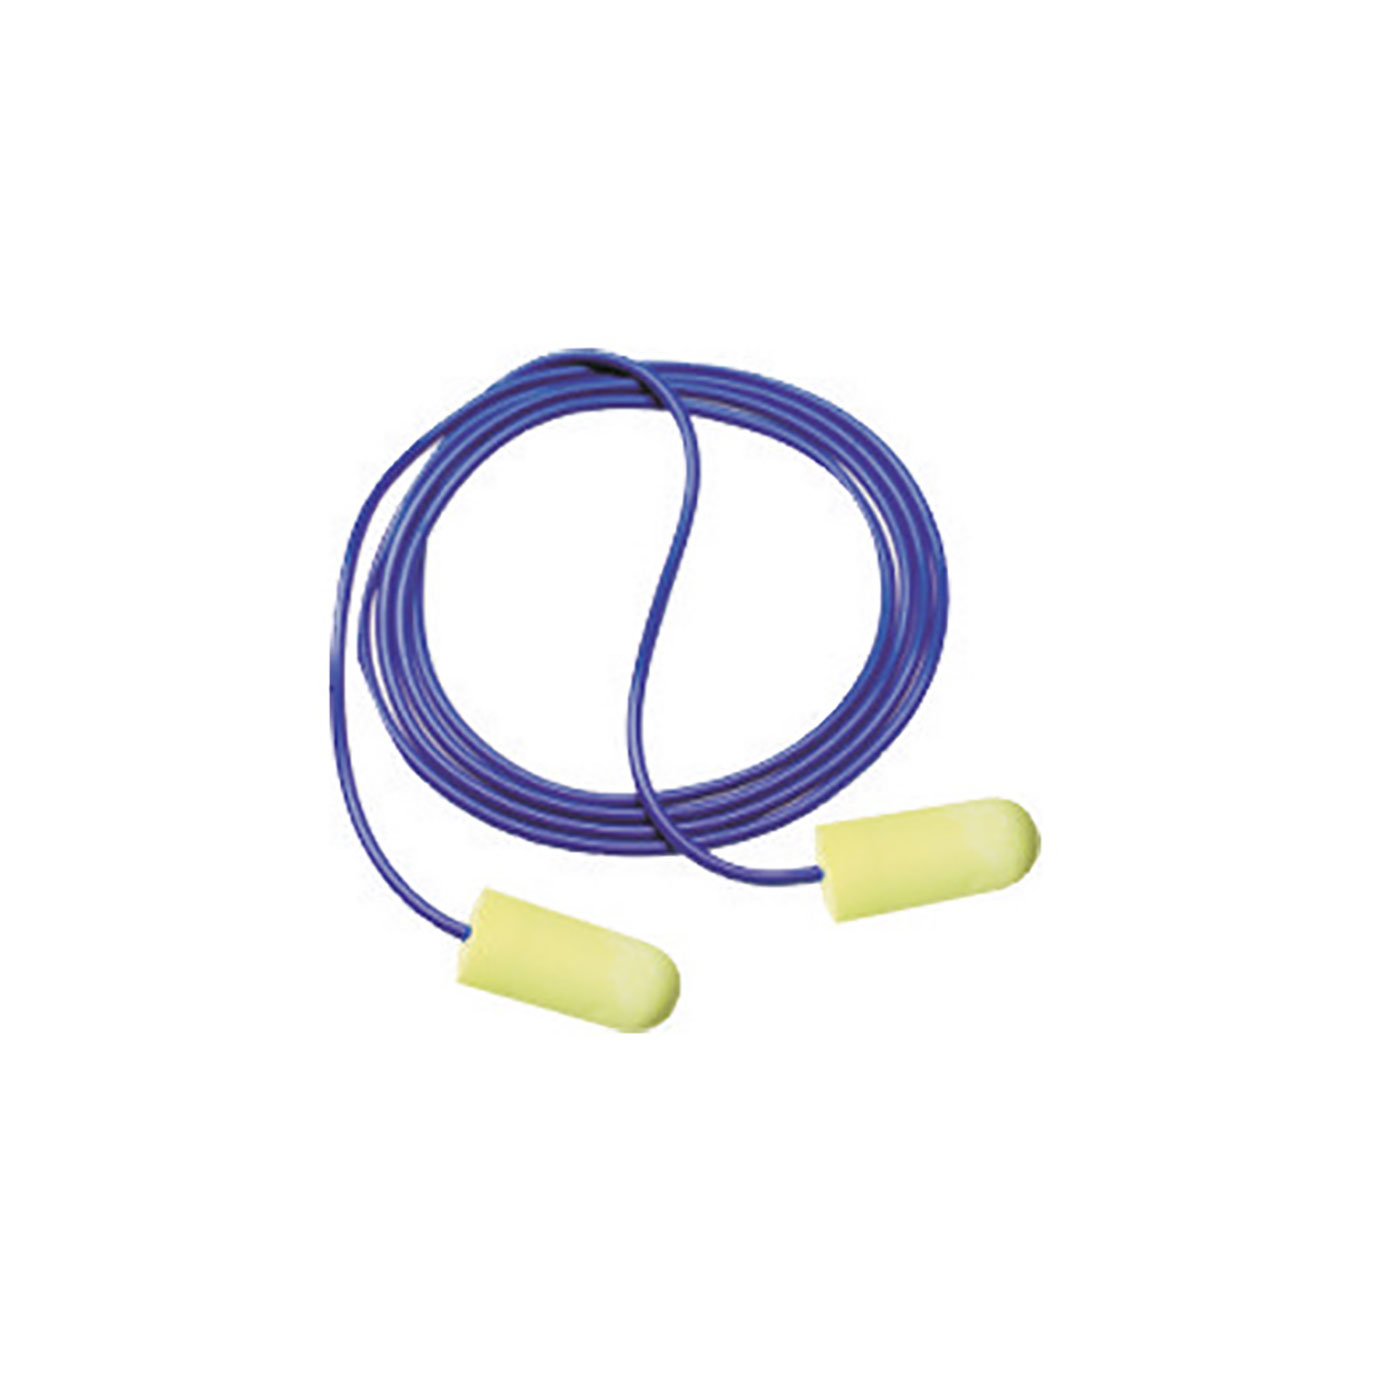 E-A-RSOFT Corded Ear Plugs